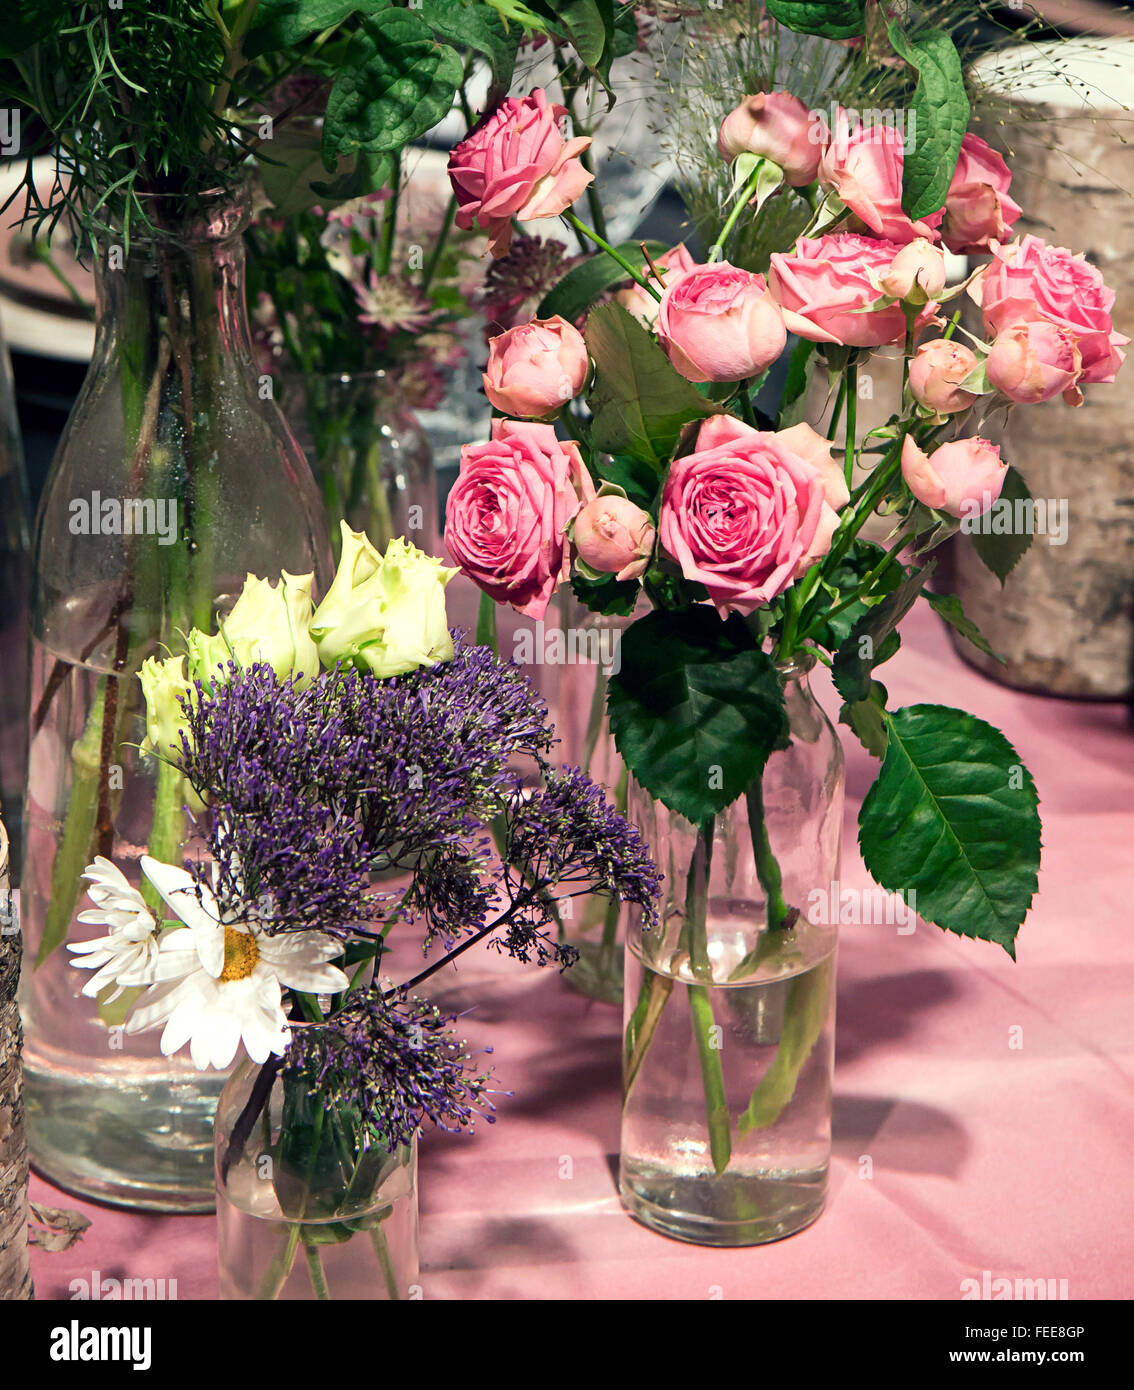 Beautiful Flower Arrangement On Table Pink Roses On Glass And Wild